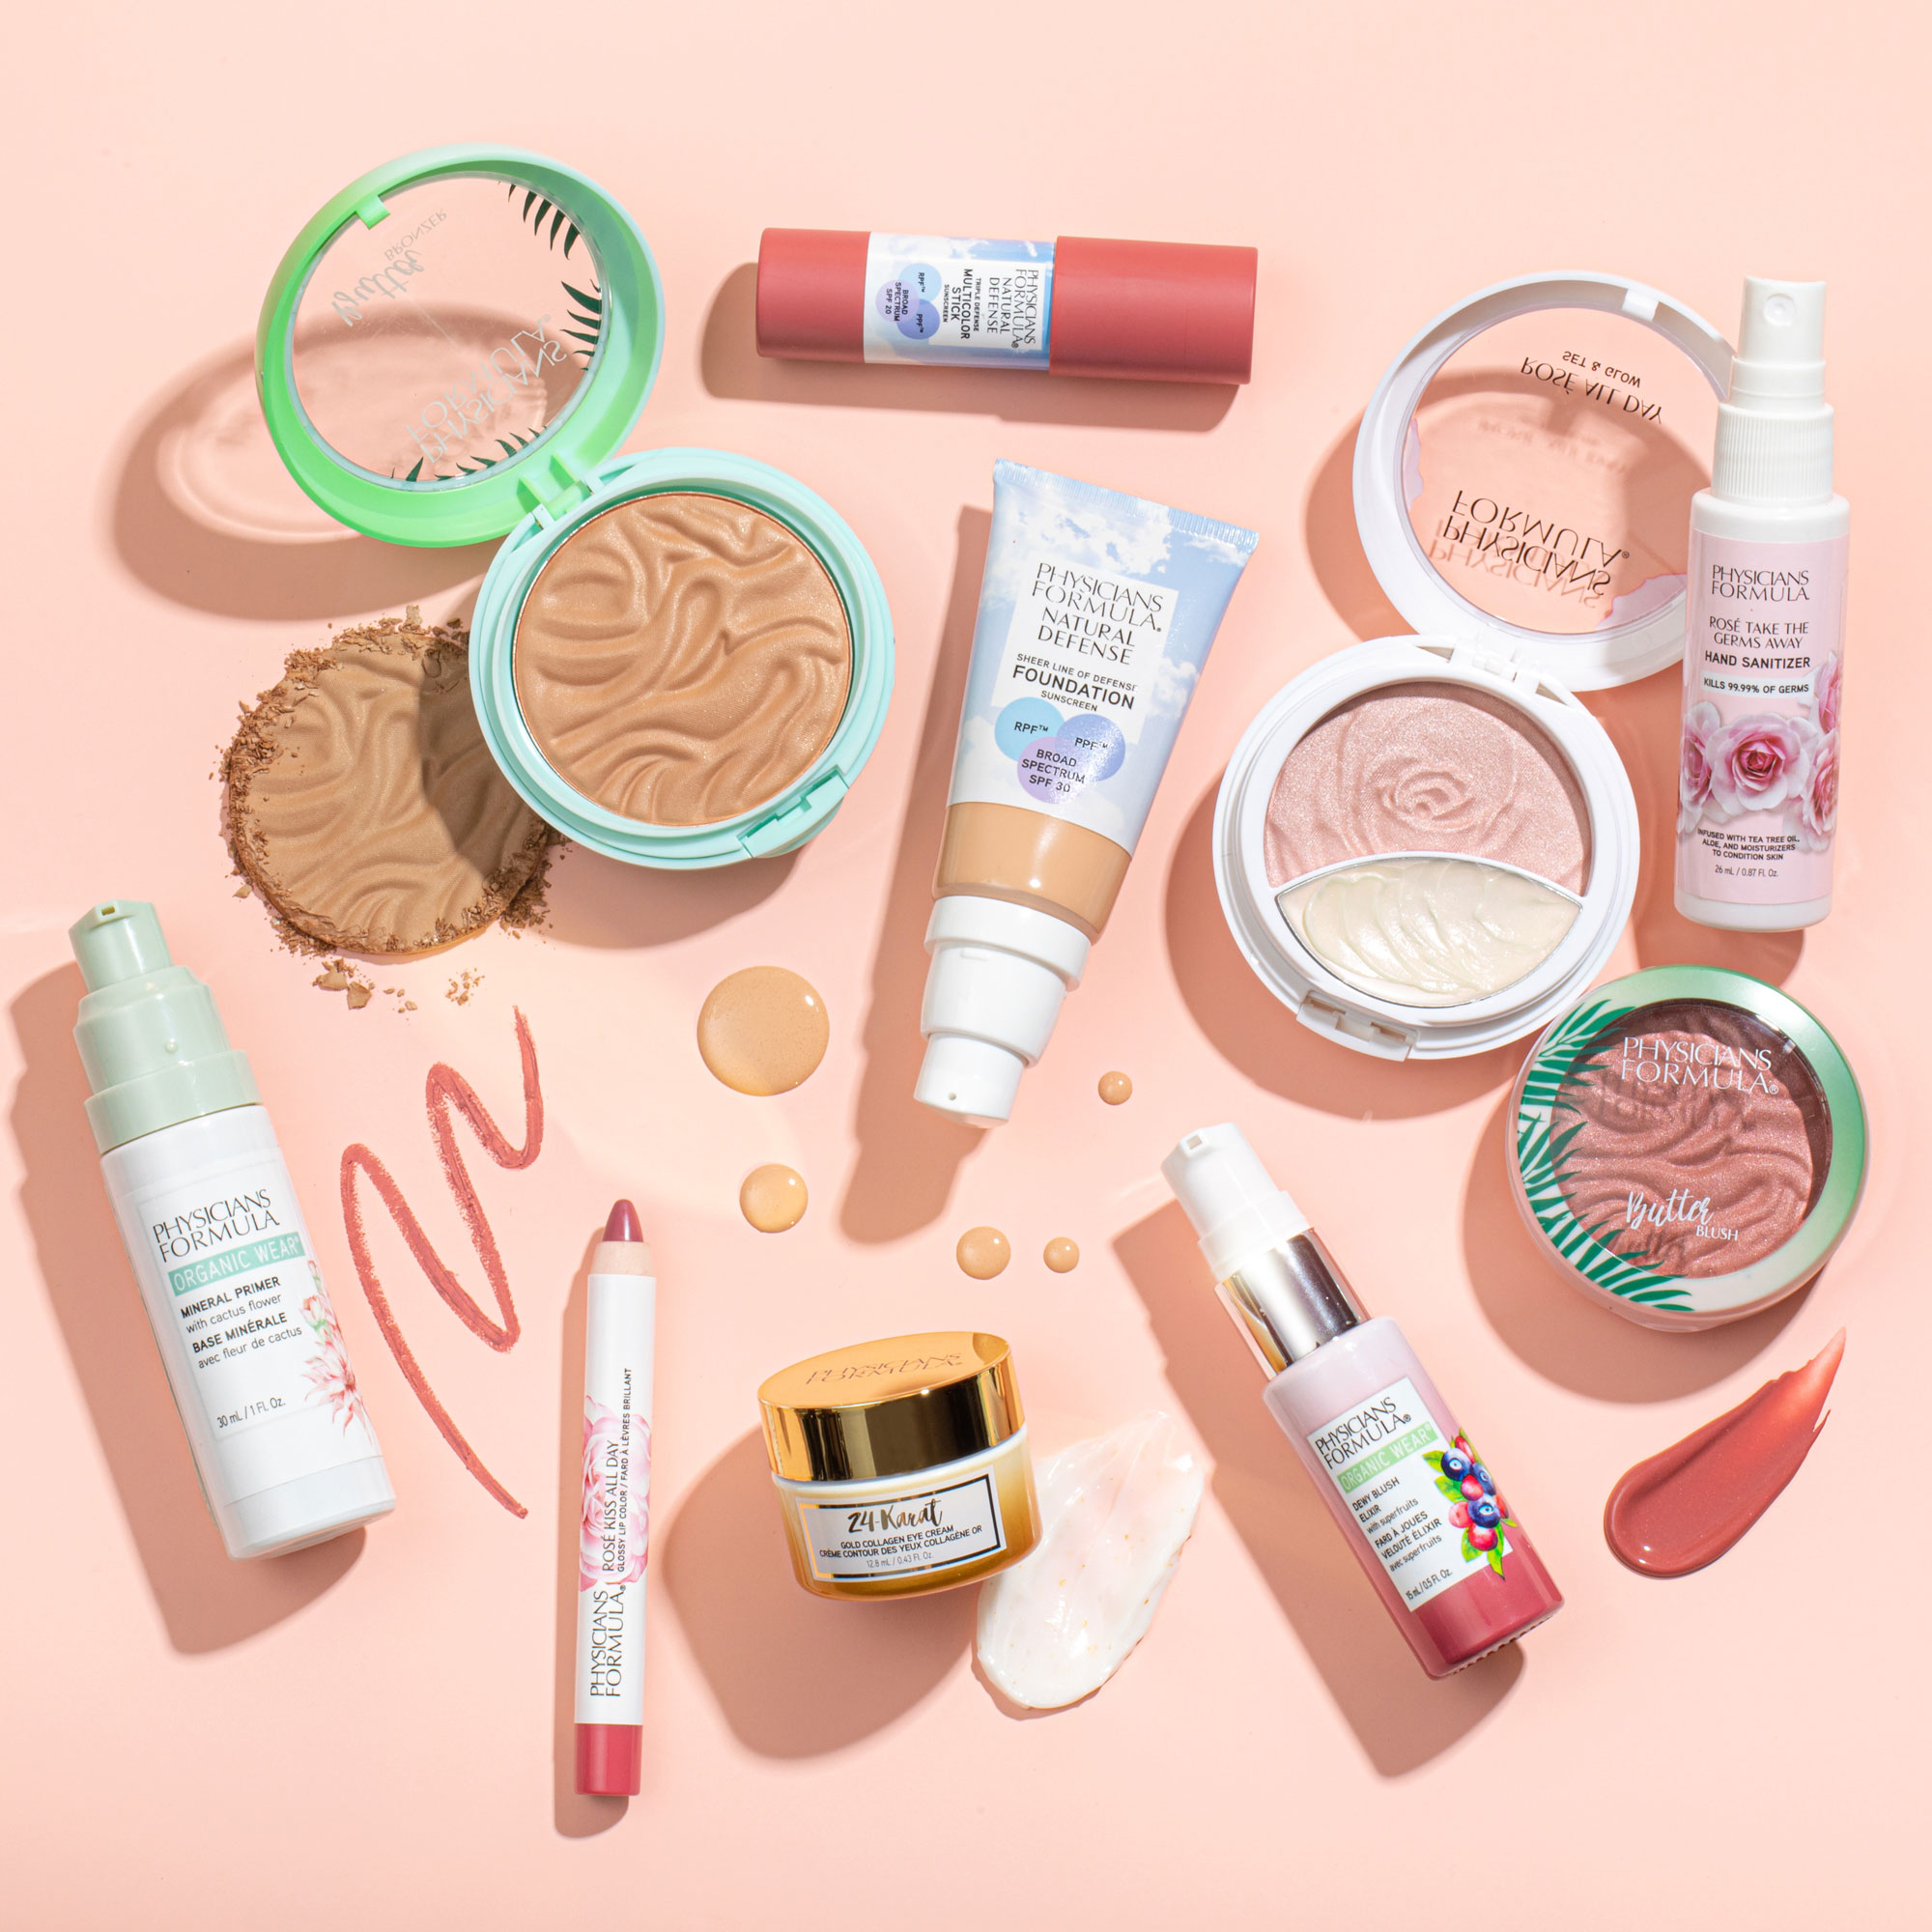 Phyisicans Formula products scattered, with swatches and pink background